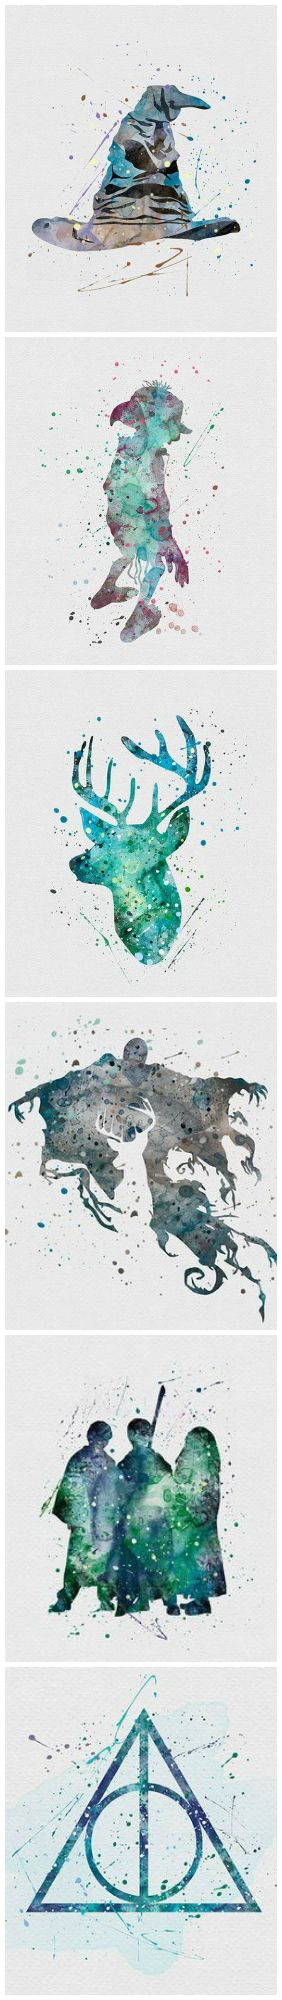 These would make beautiful and nerdy tattoos...